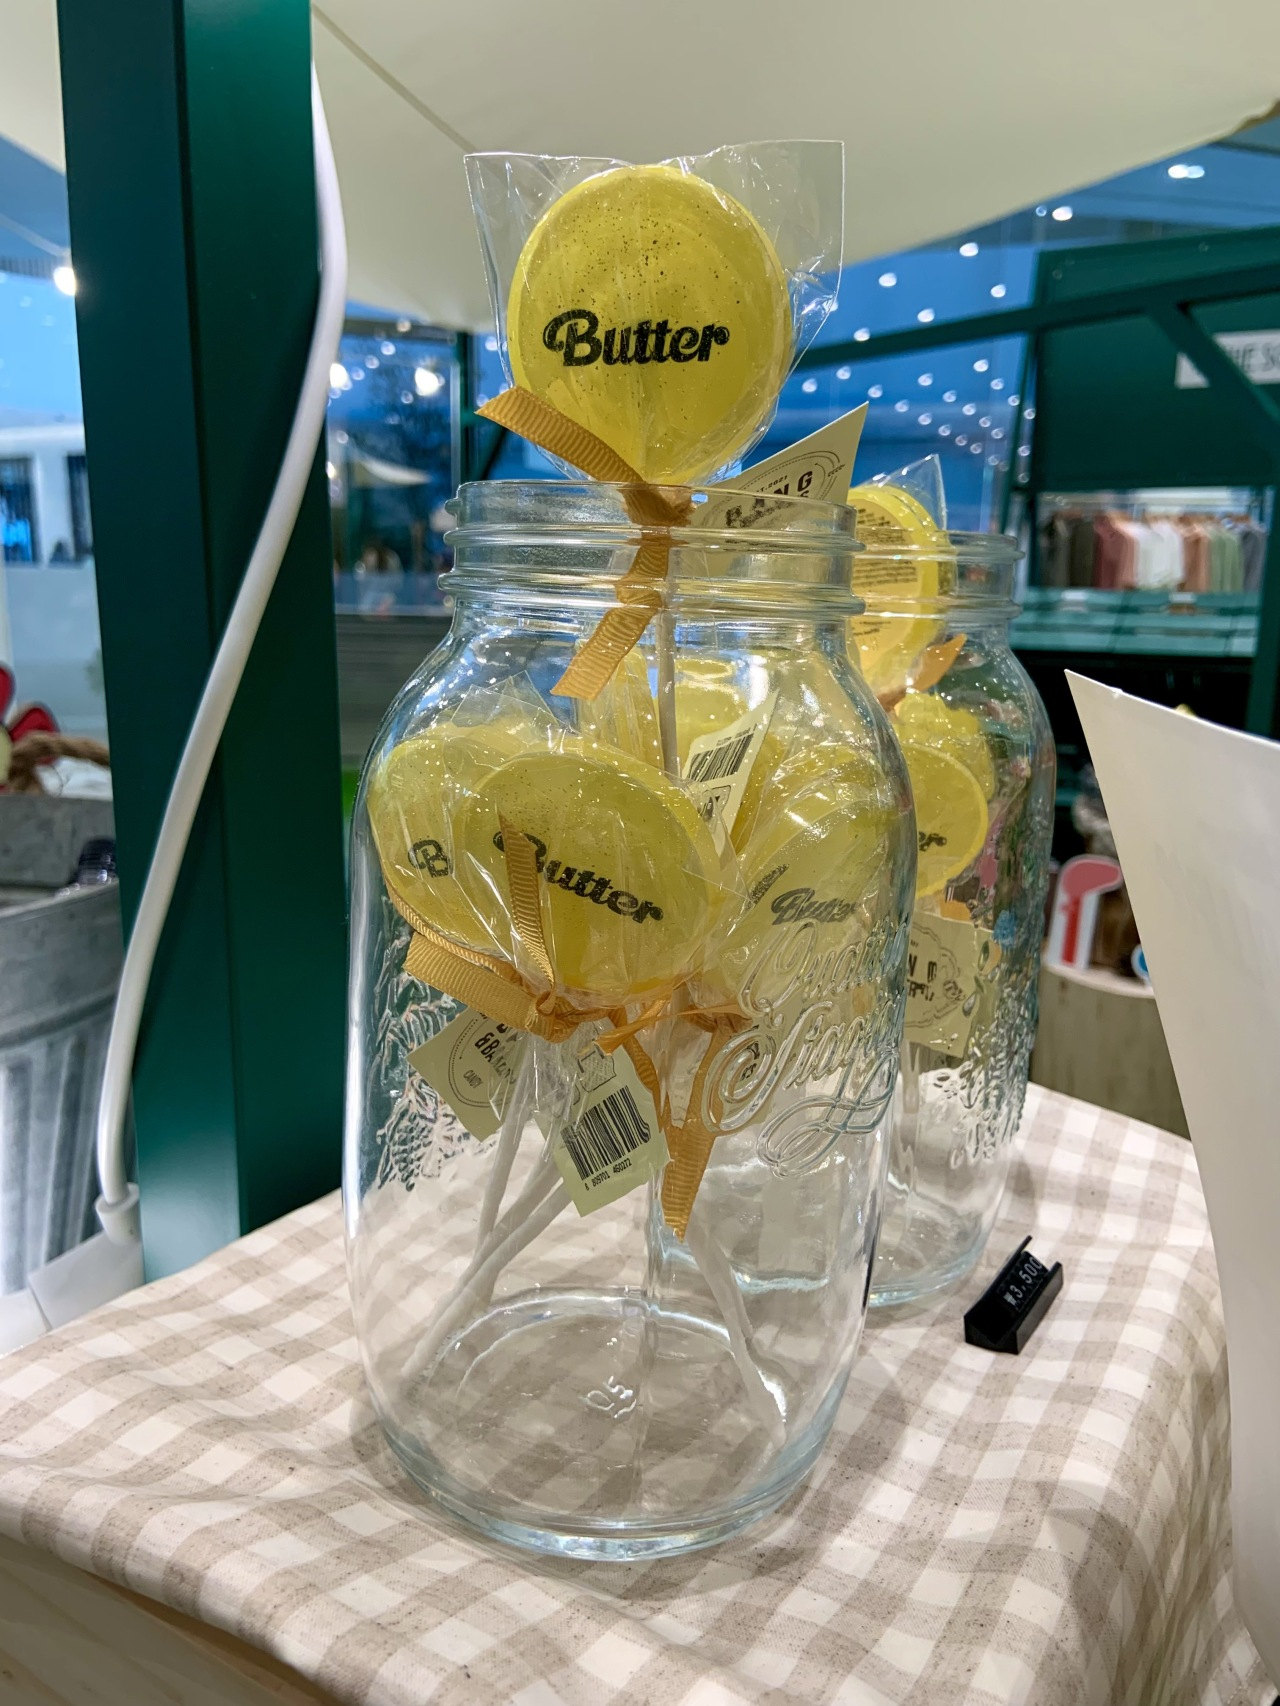 """BTS-themed lollipops named after the band's megahit song """"Butter"""" are displayed inside a glass bottle. (Park Jun-hee/The Korea Herald)"""